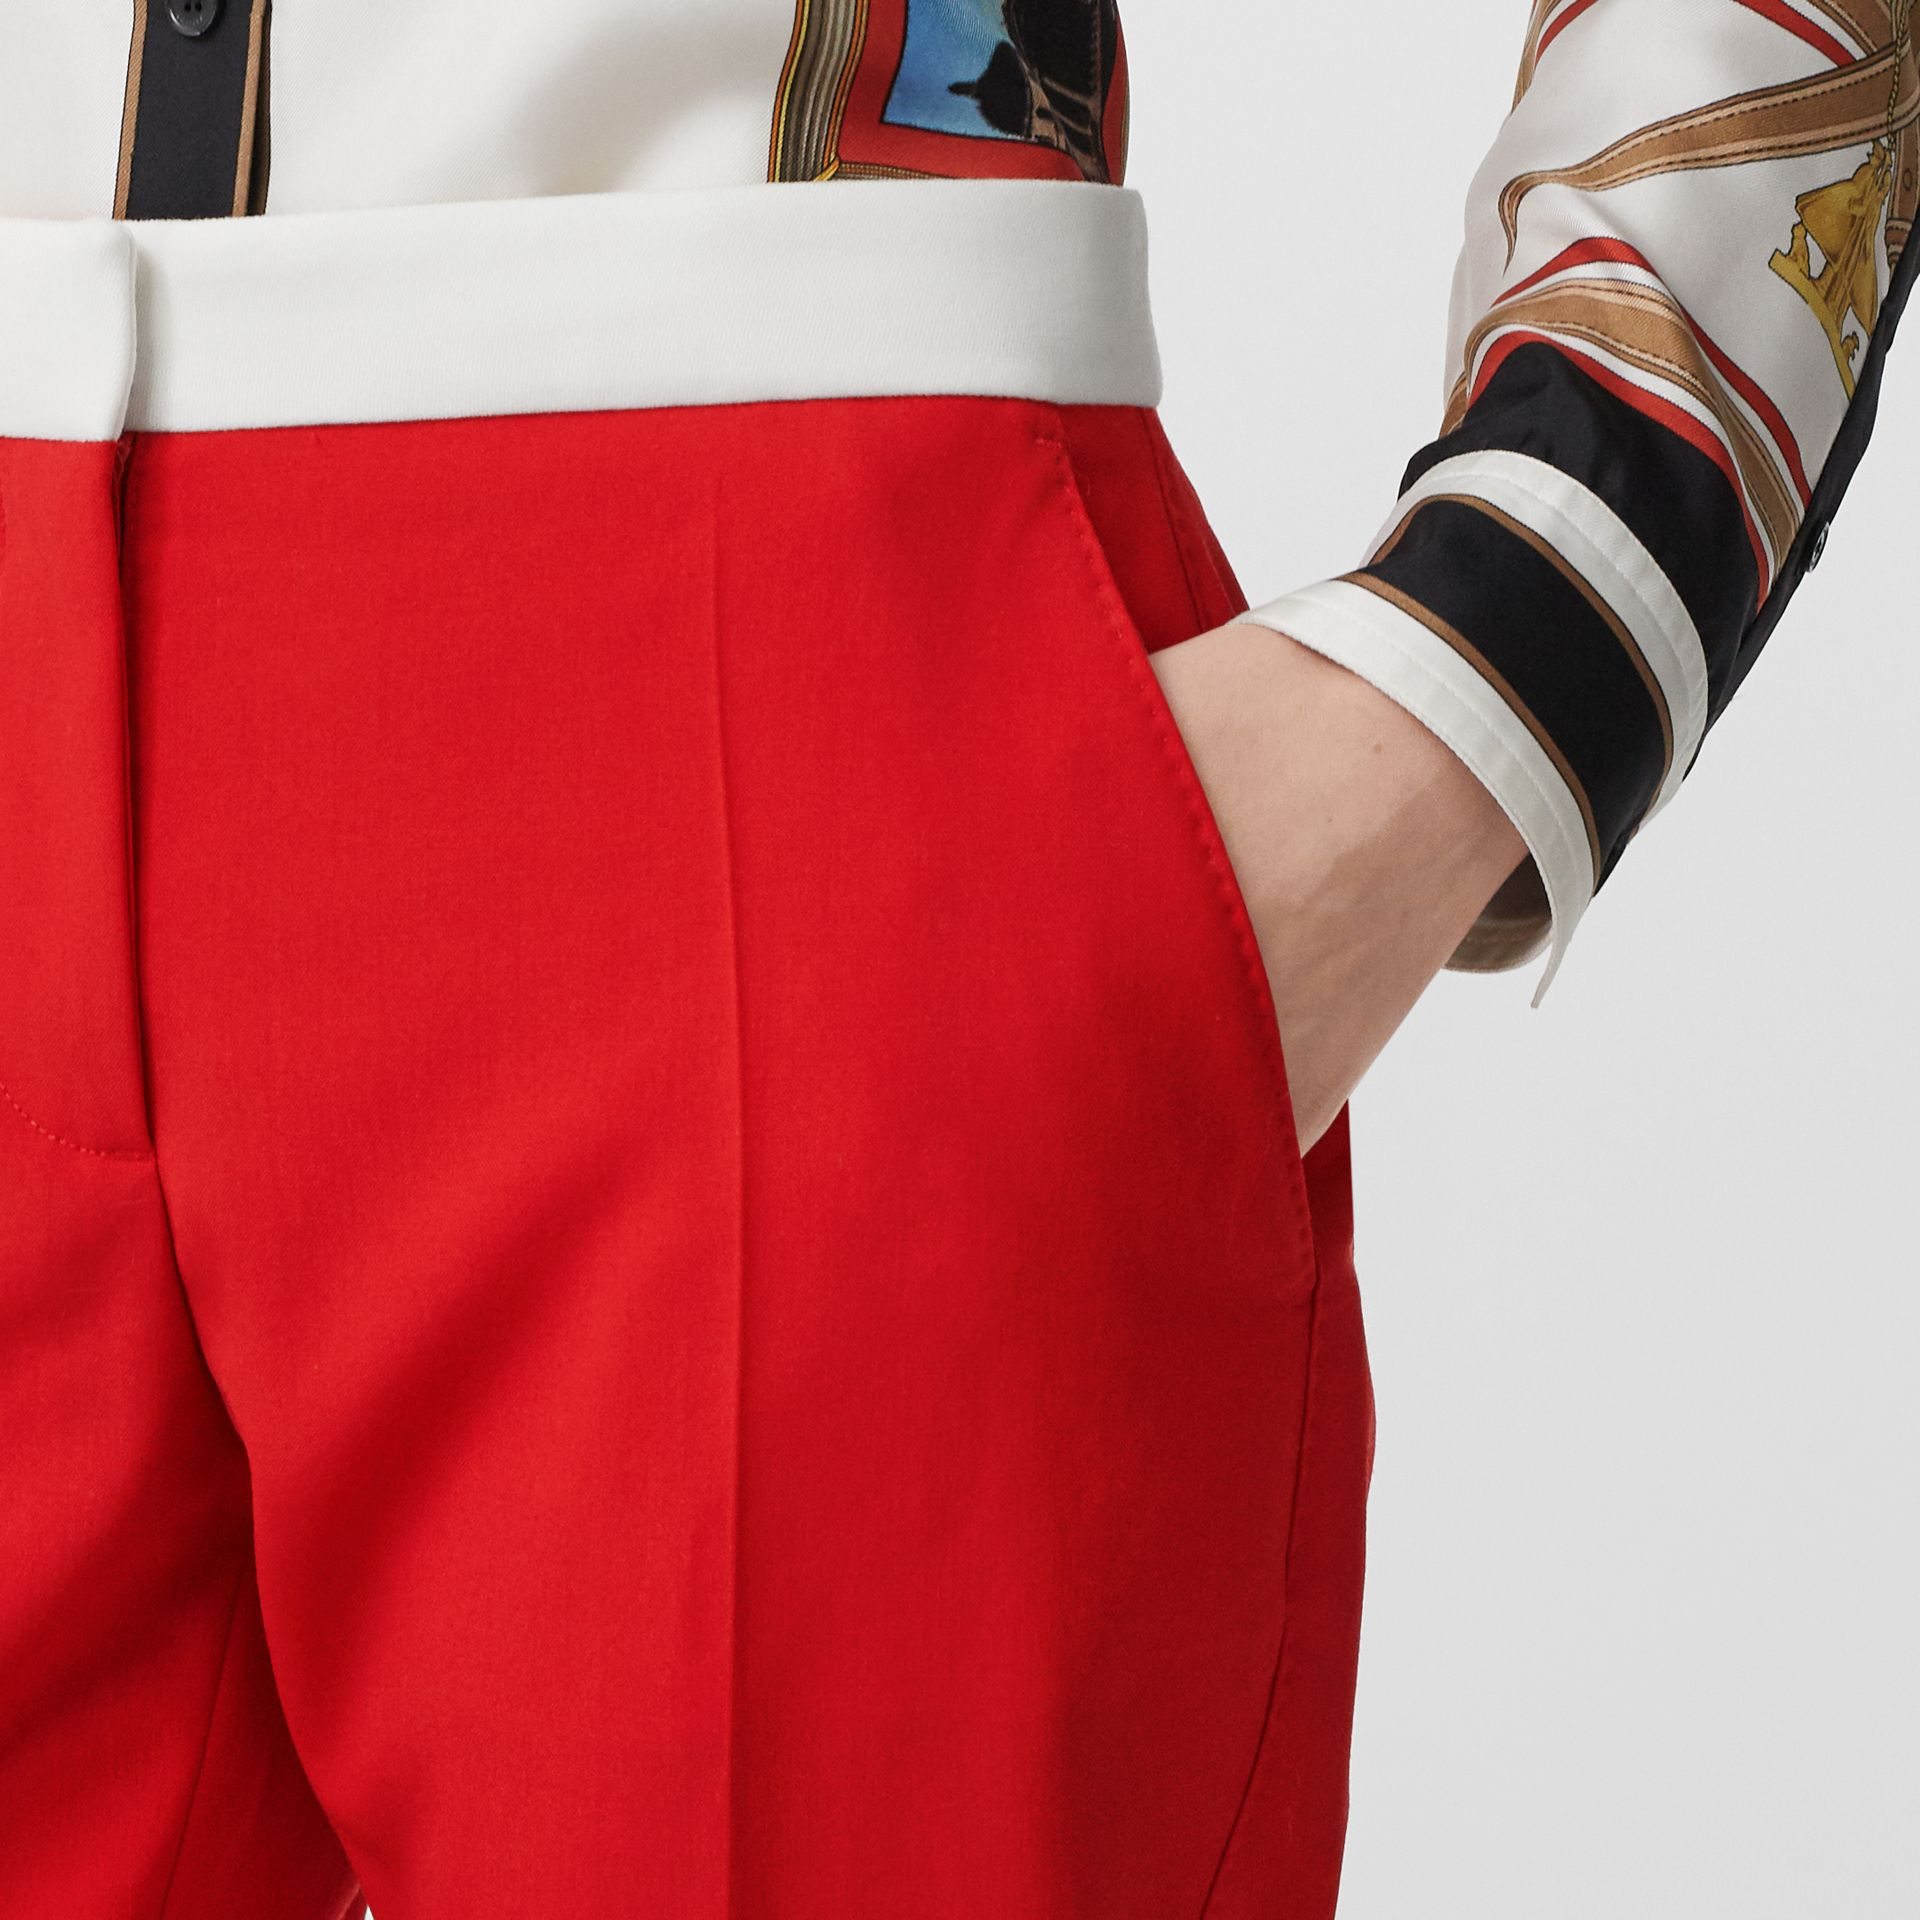 Two-tone Wool Tailored Trousers in Bright Red - Women | Burberry - gallery image 1